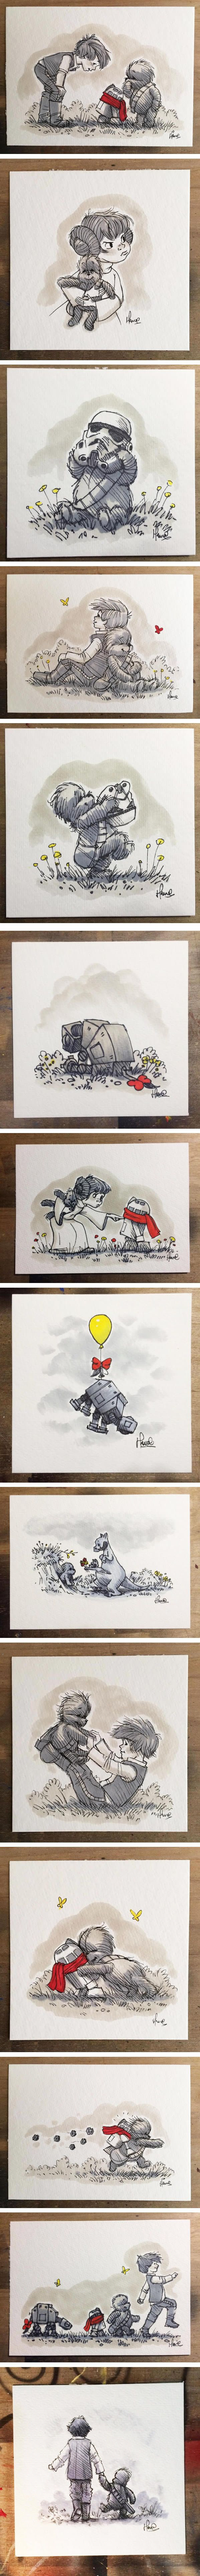 Star Wars Characters Reimagined As Winnie The Pooh And Friends (By James Hance)